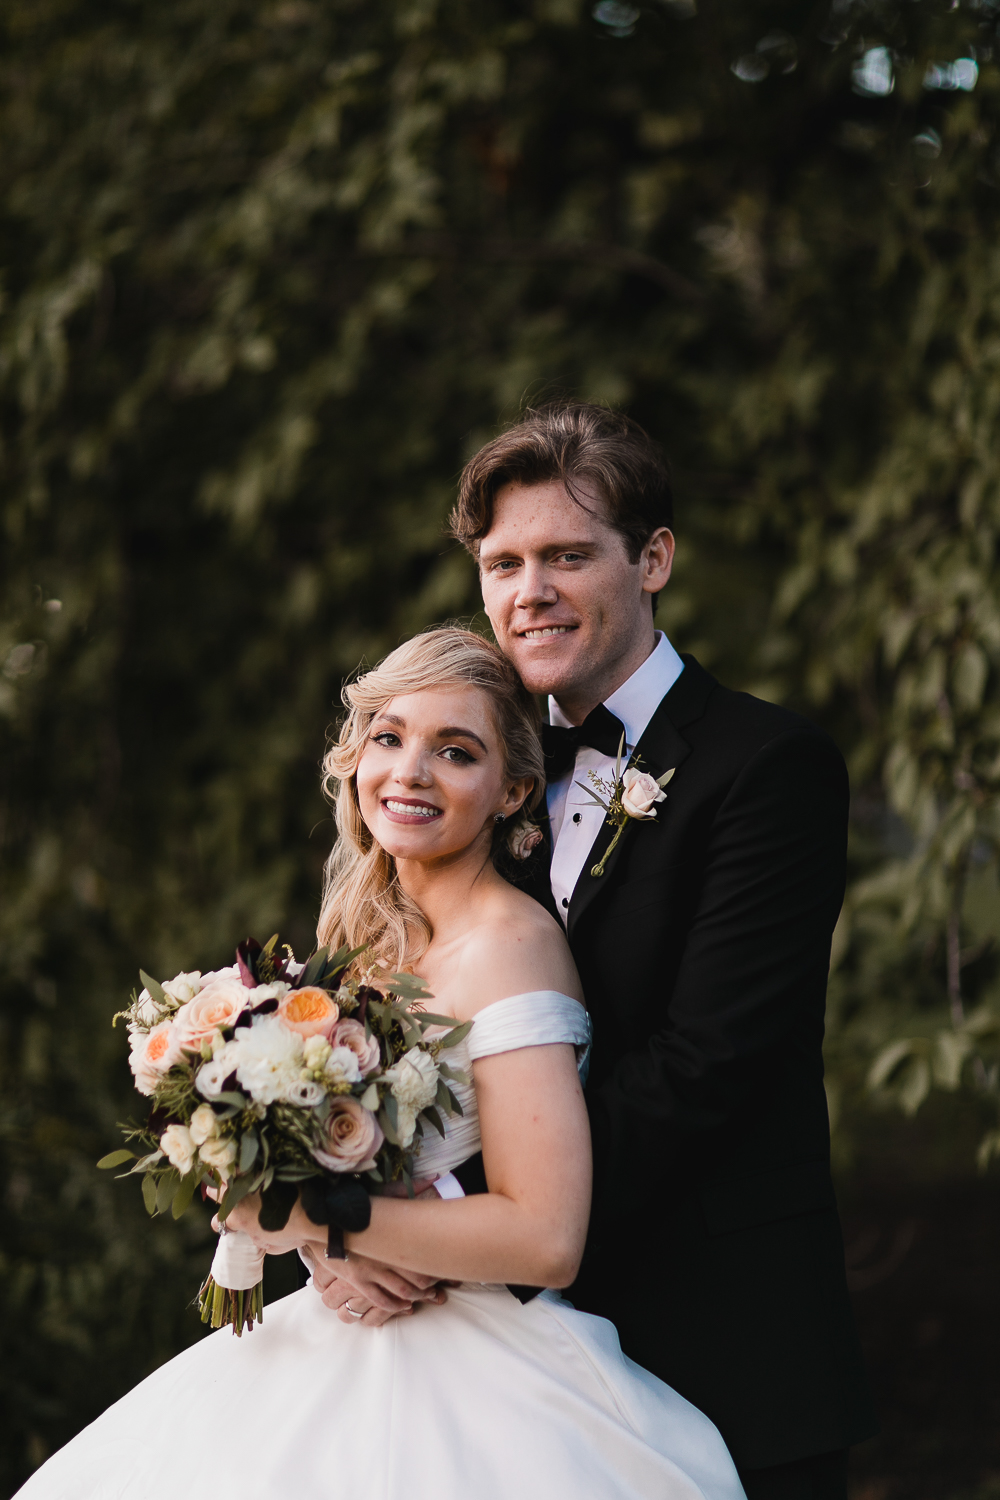 A classic wedding portrait in Central Park.